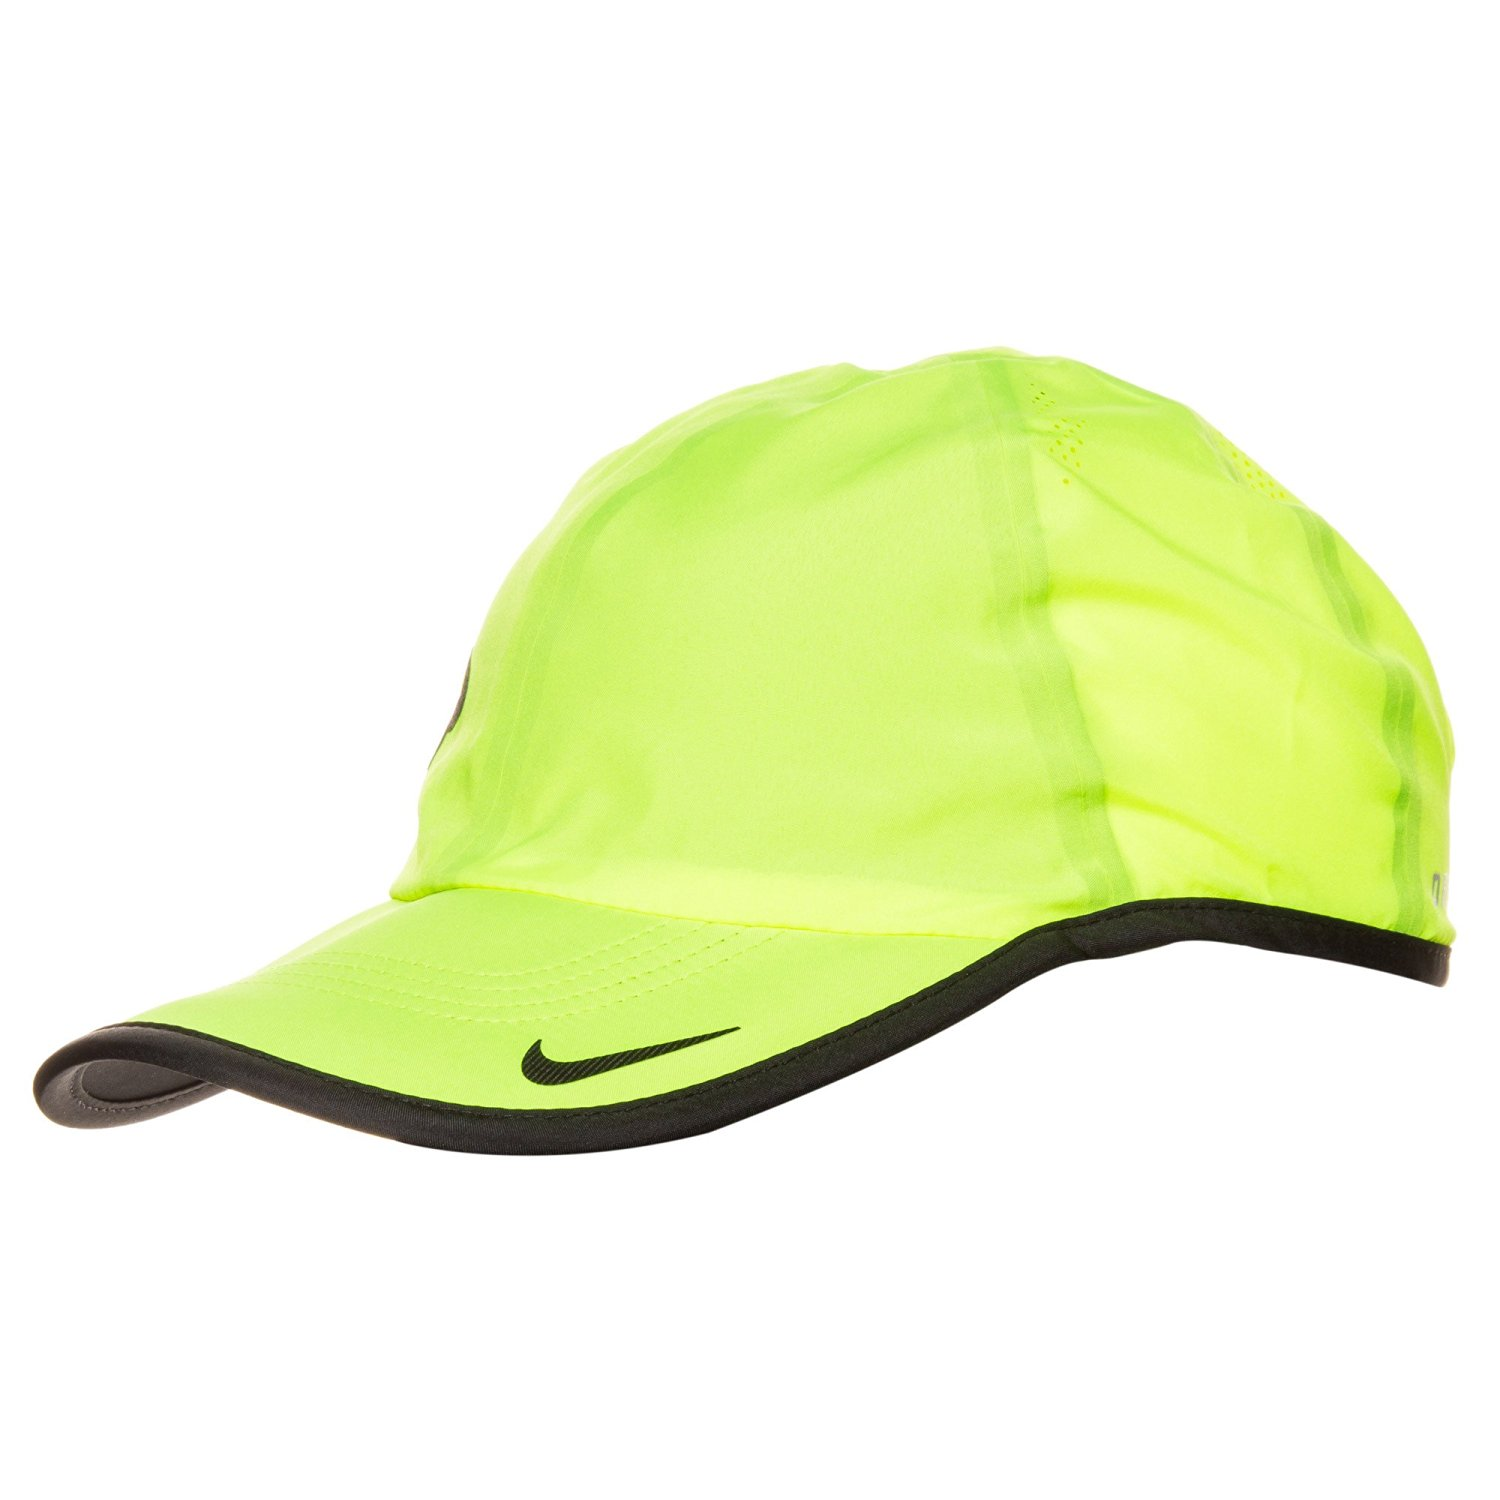 d675824d3e09e Get Quotations · NIKE - RF Bull Cap - Neon Green - One Size